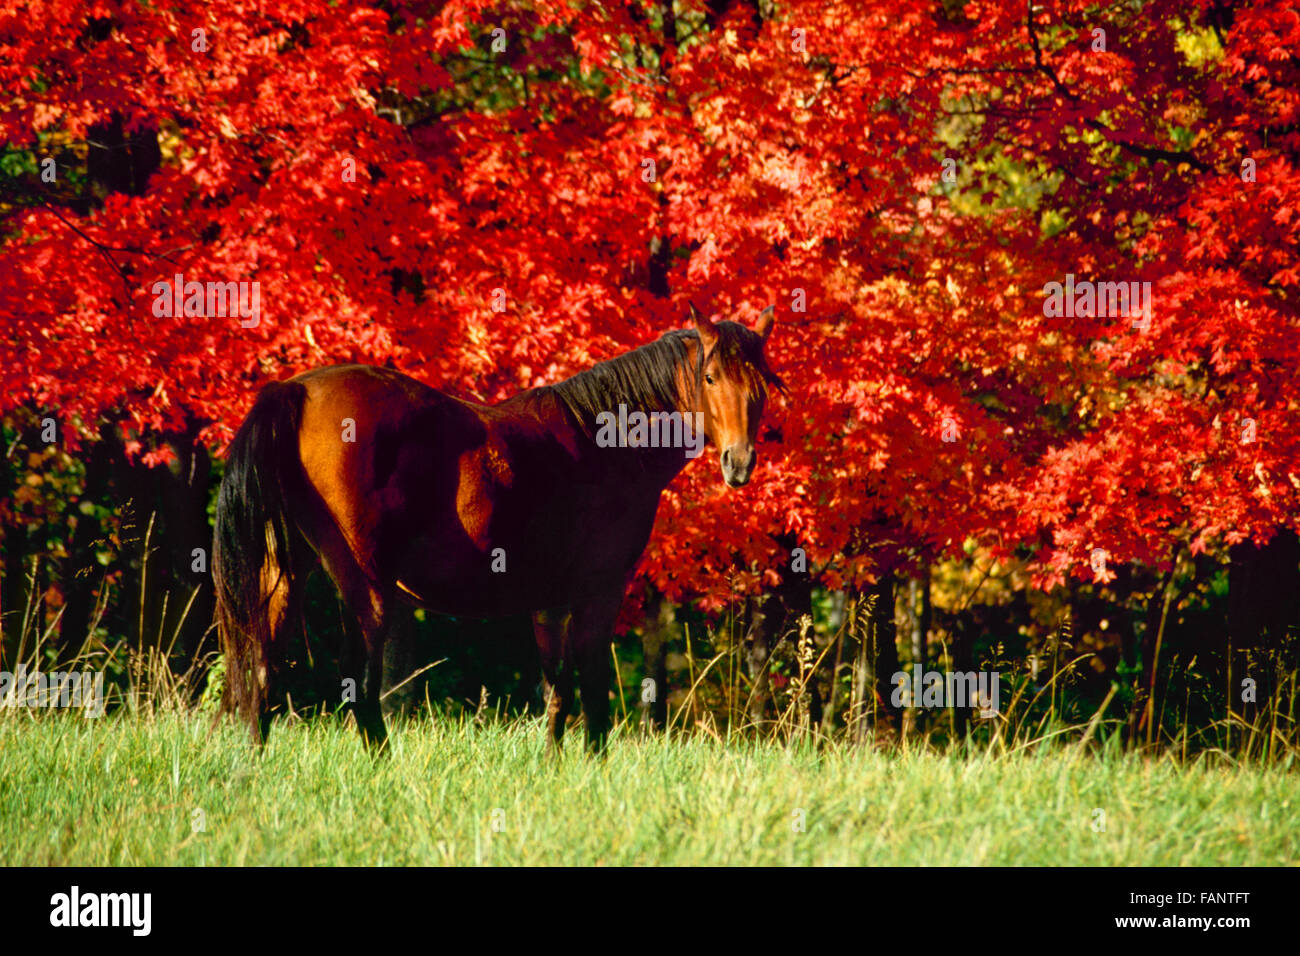 Chestnut horse in autumn with red maple trees Missouri Stock